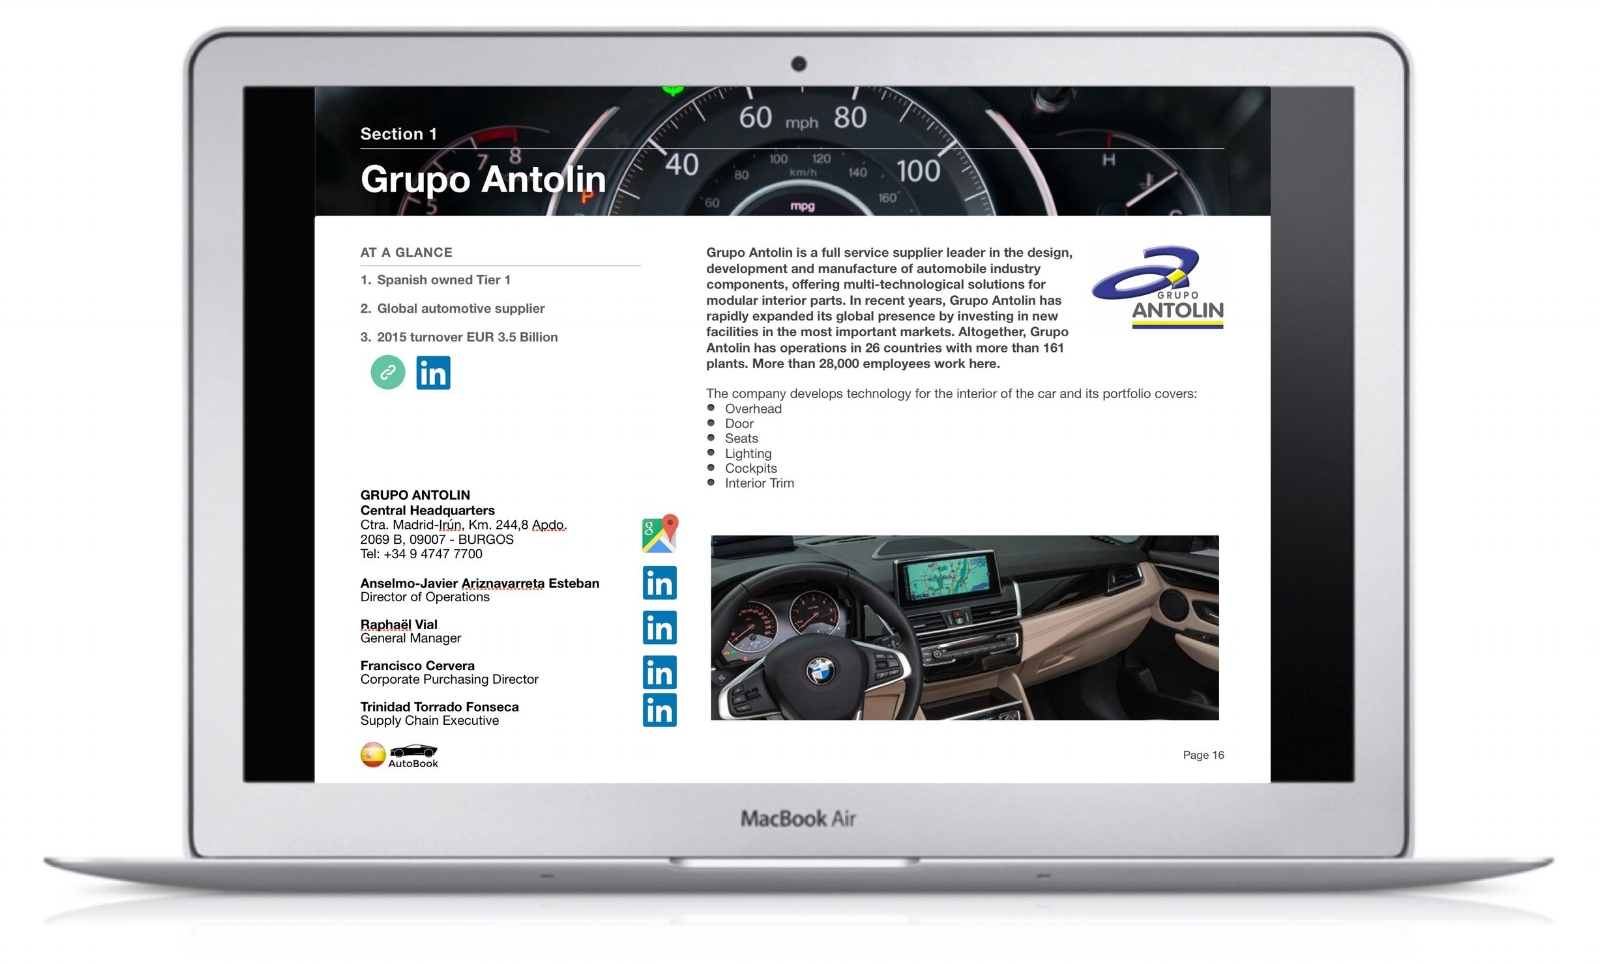 The Spain AutoBook includes company profiles of OEM car makers, Multinationals and Spanish automotive parts suppliers as well as organizations, media and exhibitions.